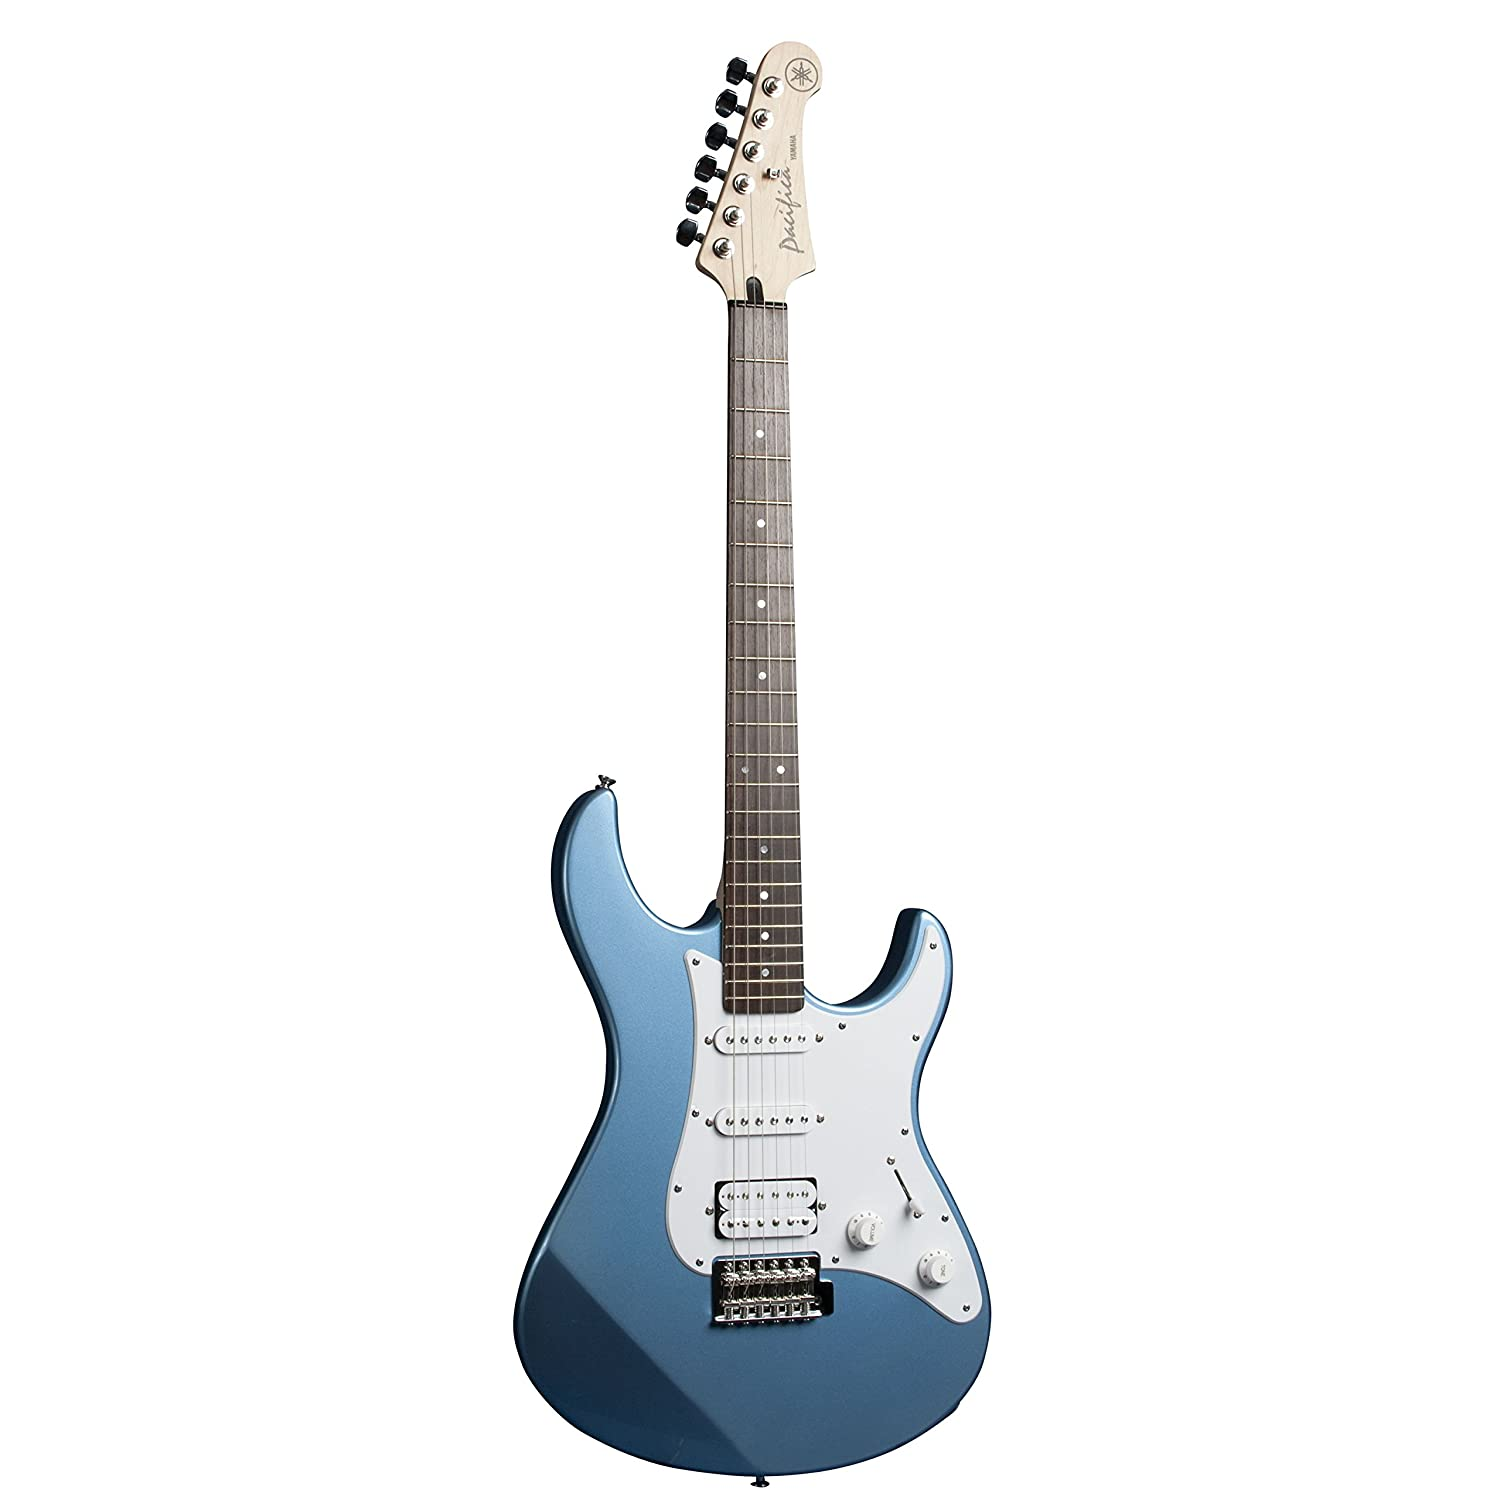 Yamaha PAC112J Electric guitar Sólido 6strings Azul, Blanco: Amazon.es: Electrónica